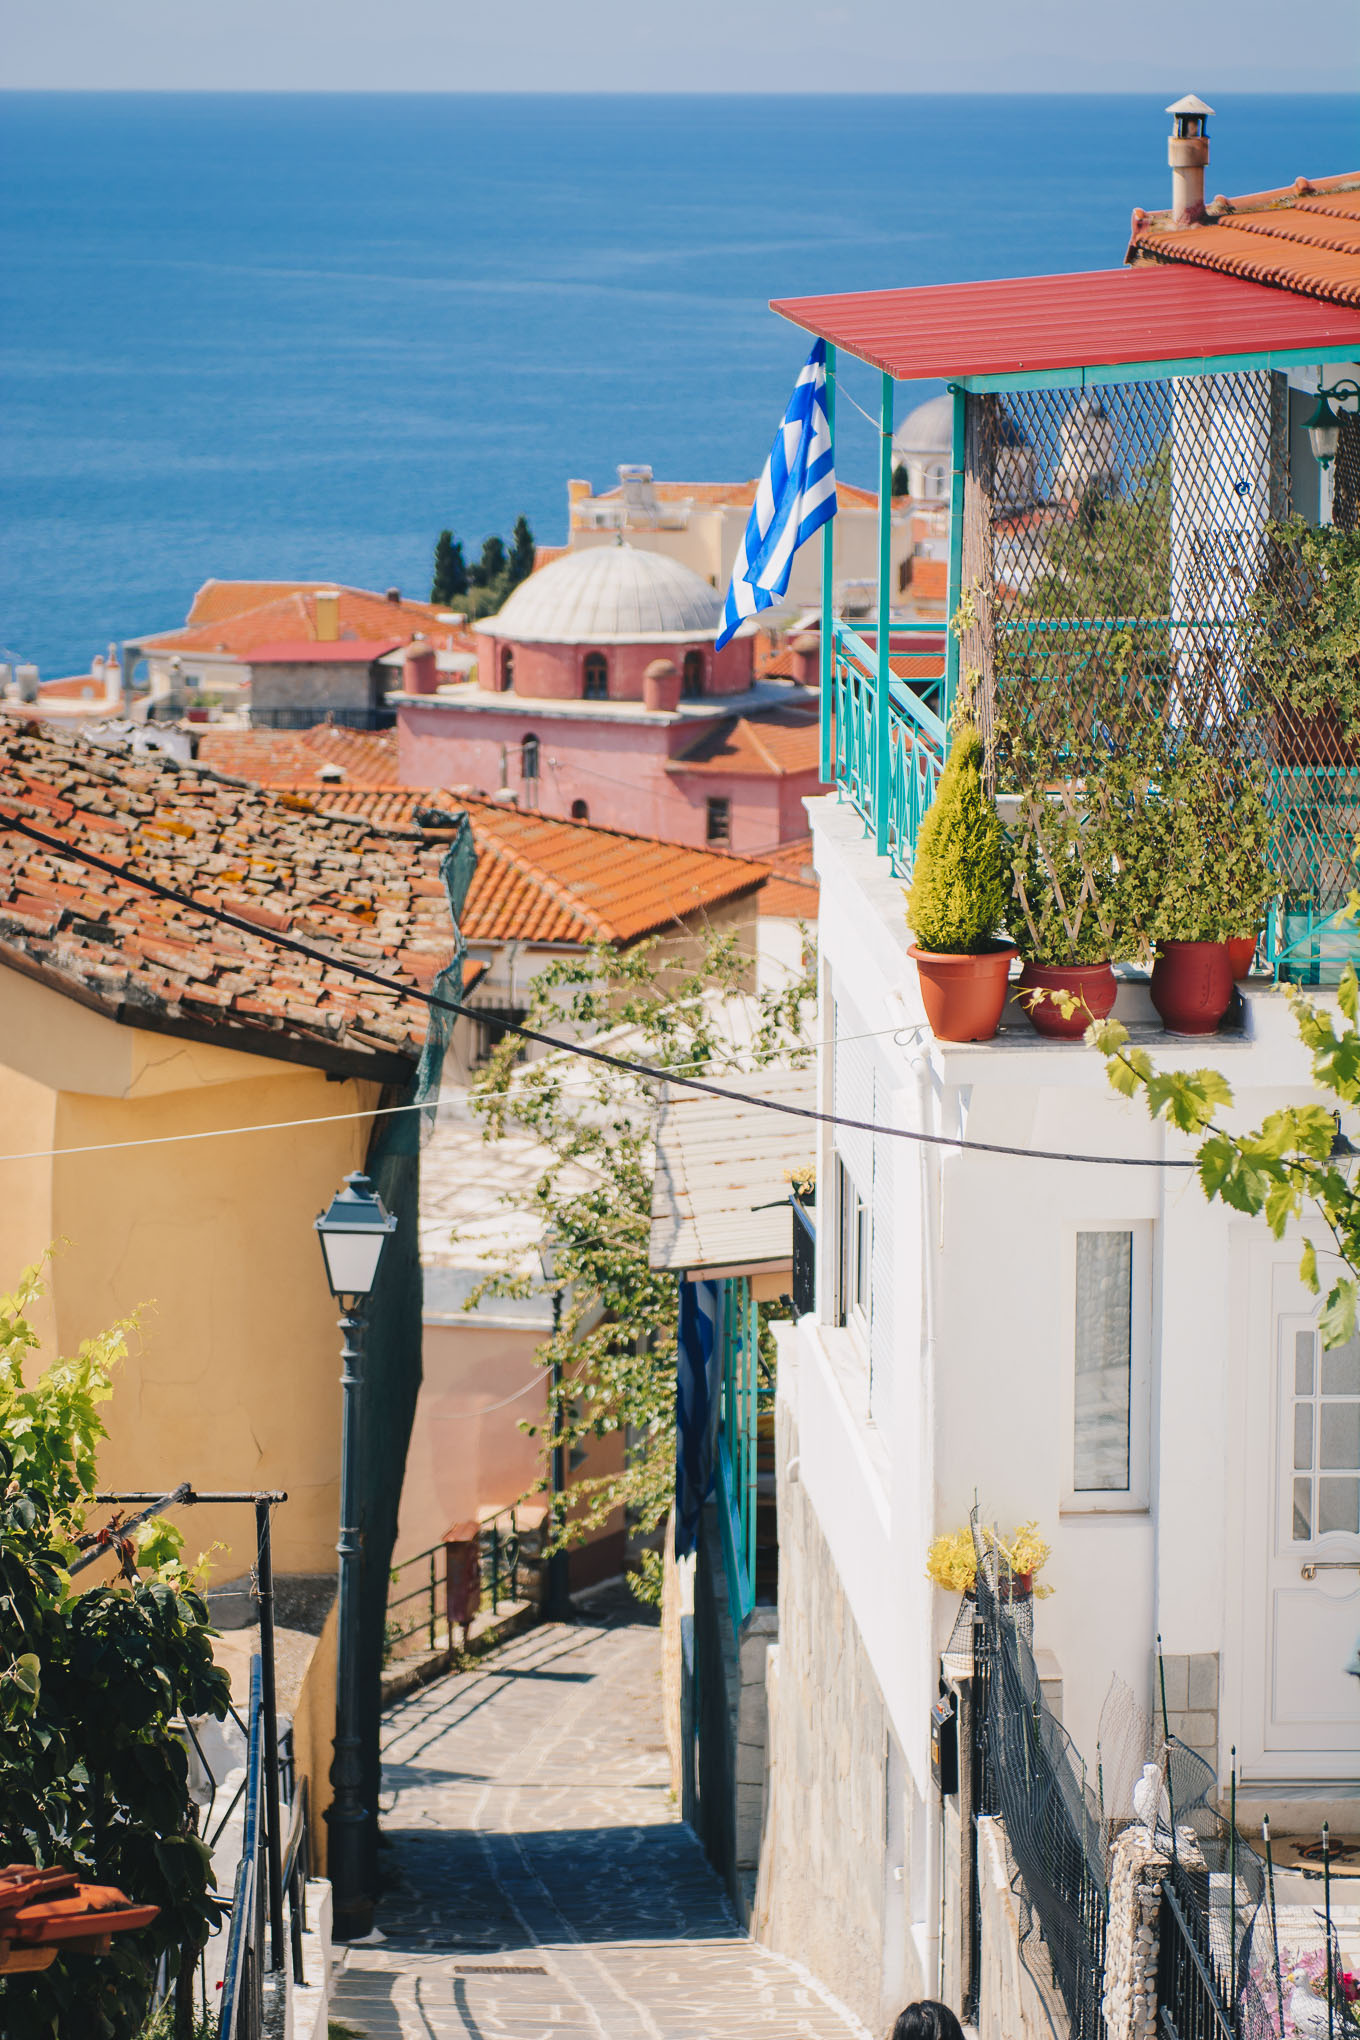 Charming Kavala old town street